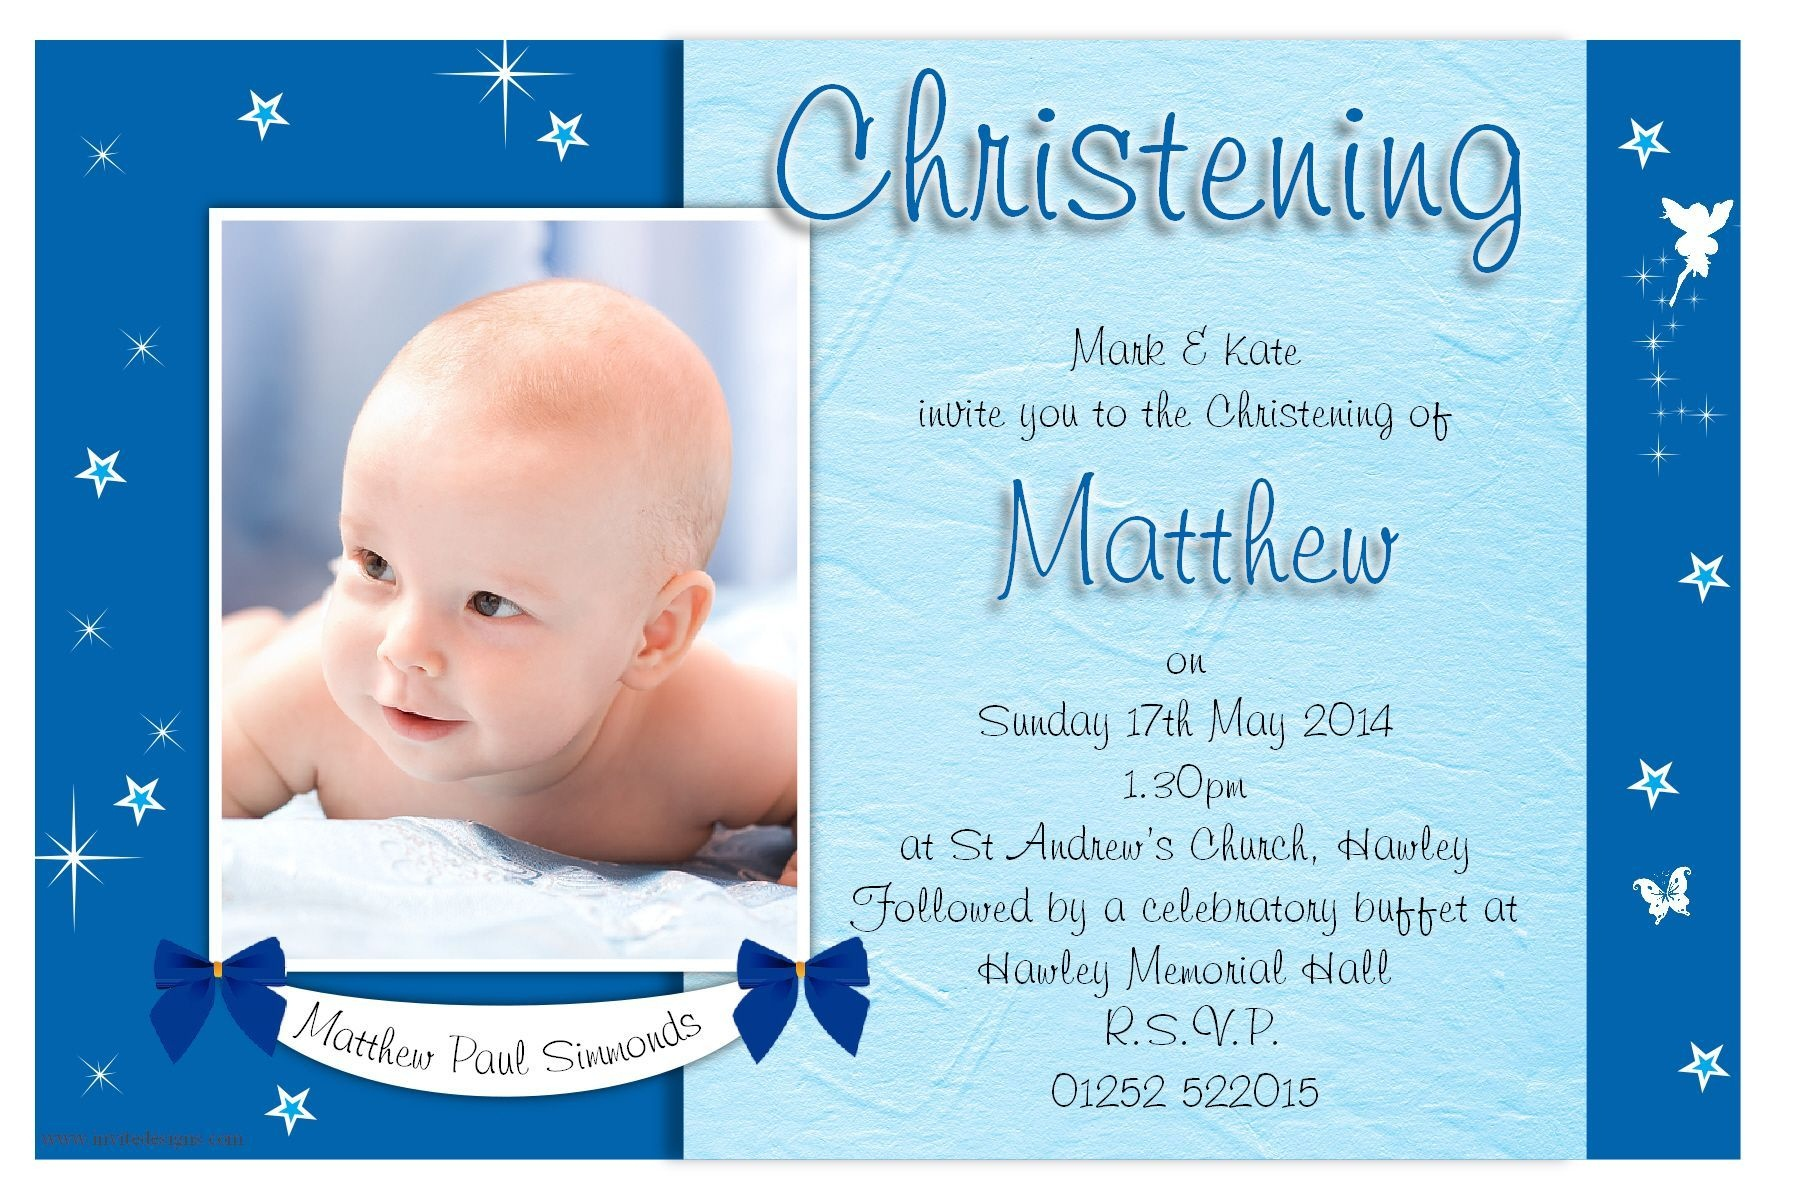 Free Christening Invitation Template Printable | Cakes In 2019 - Free Printable Personalized Baptism Invitations